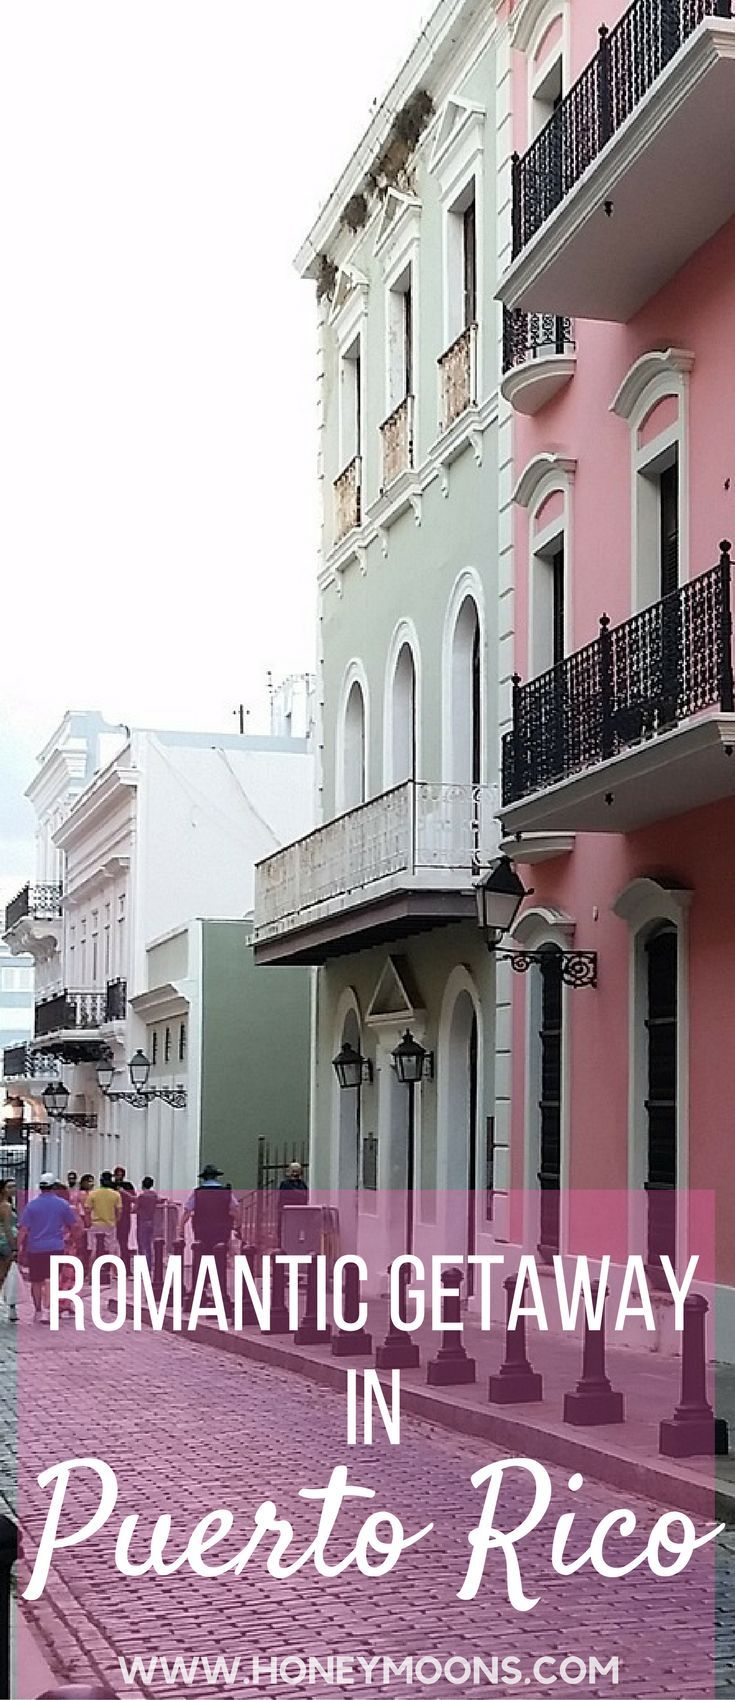 Puerto Rico is the perfect honeymoon destination because it's culturally diverse, easy to get to and has near perfect year-round weather. Check out these tips and advice as well as recommendations on what not to miss for your honeymoon in Puerto Rico!